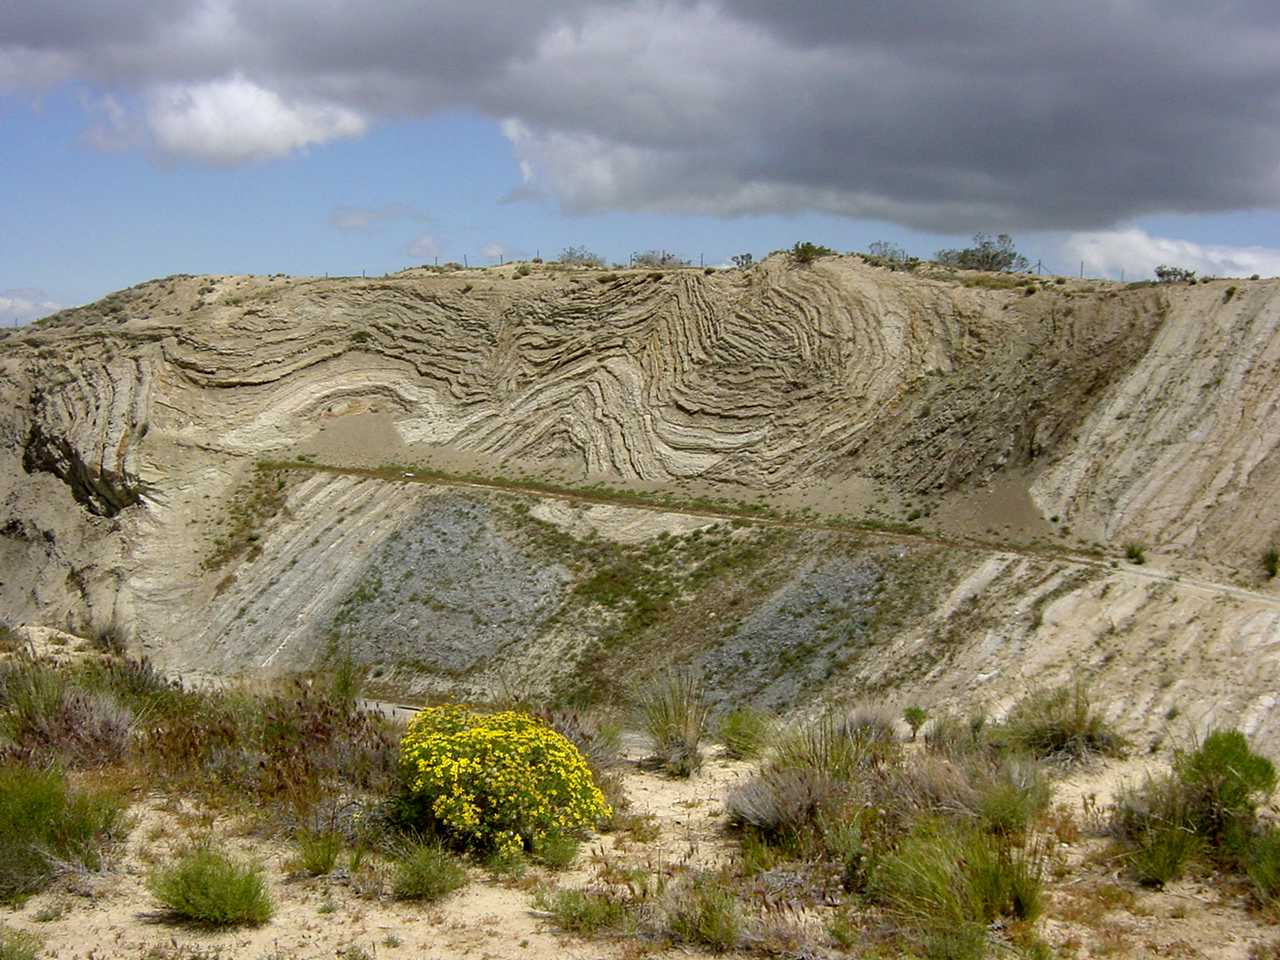 Folds exposed in a roadcut along Highway 14 in Palmdale, California, adjacent to San Andreas fault. With permission by: Garry Hayes and Susan Hayes from: http://geotripperimages.com/Tectonic_Processes/Folds.htm